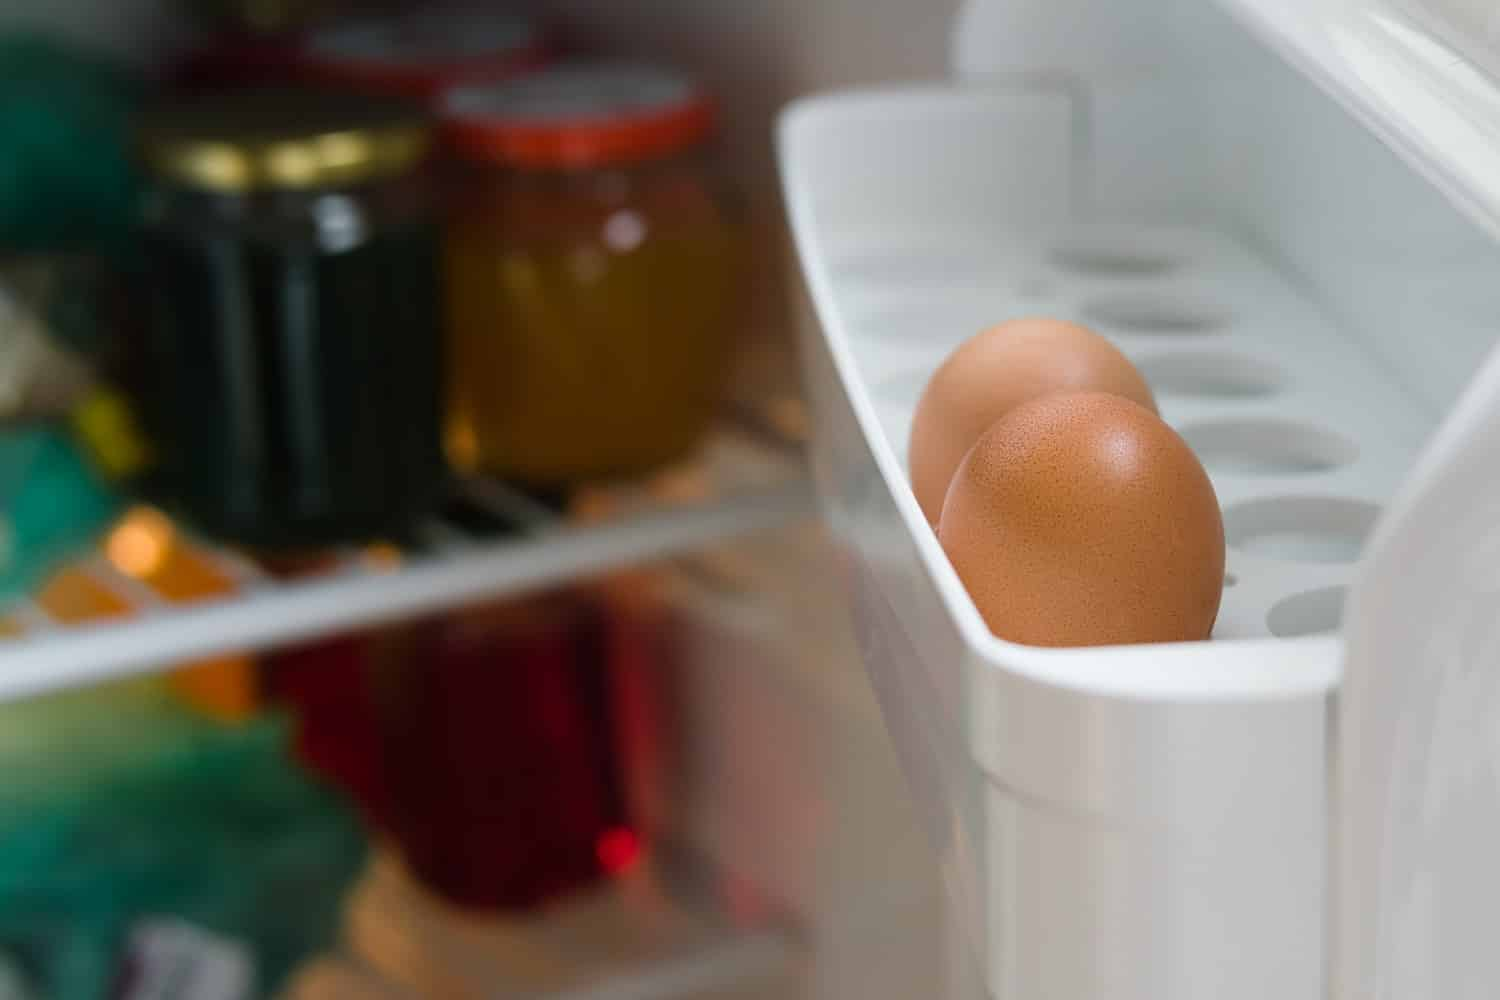 Two chicken eggs on a shelf of the refrigerator door close-up. Inside the refrigerator glass jars.